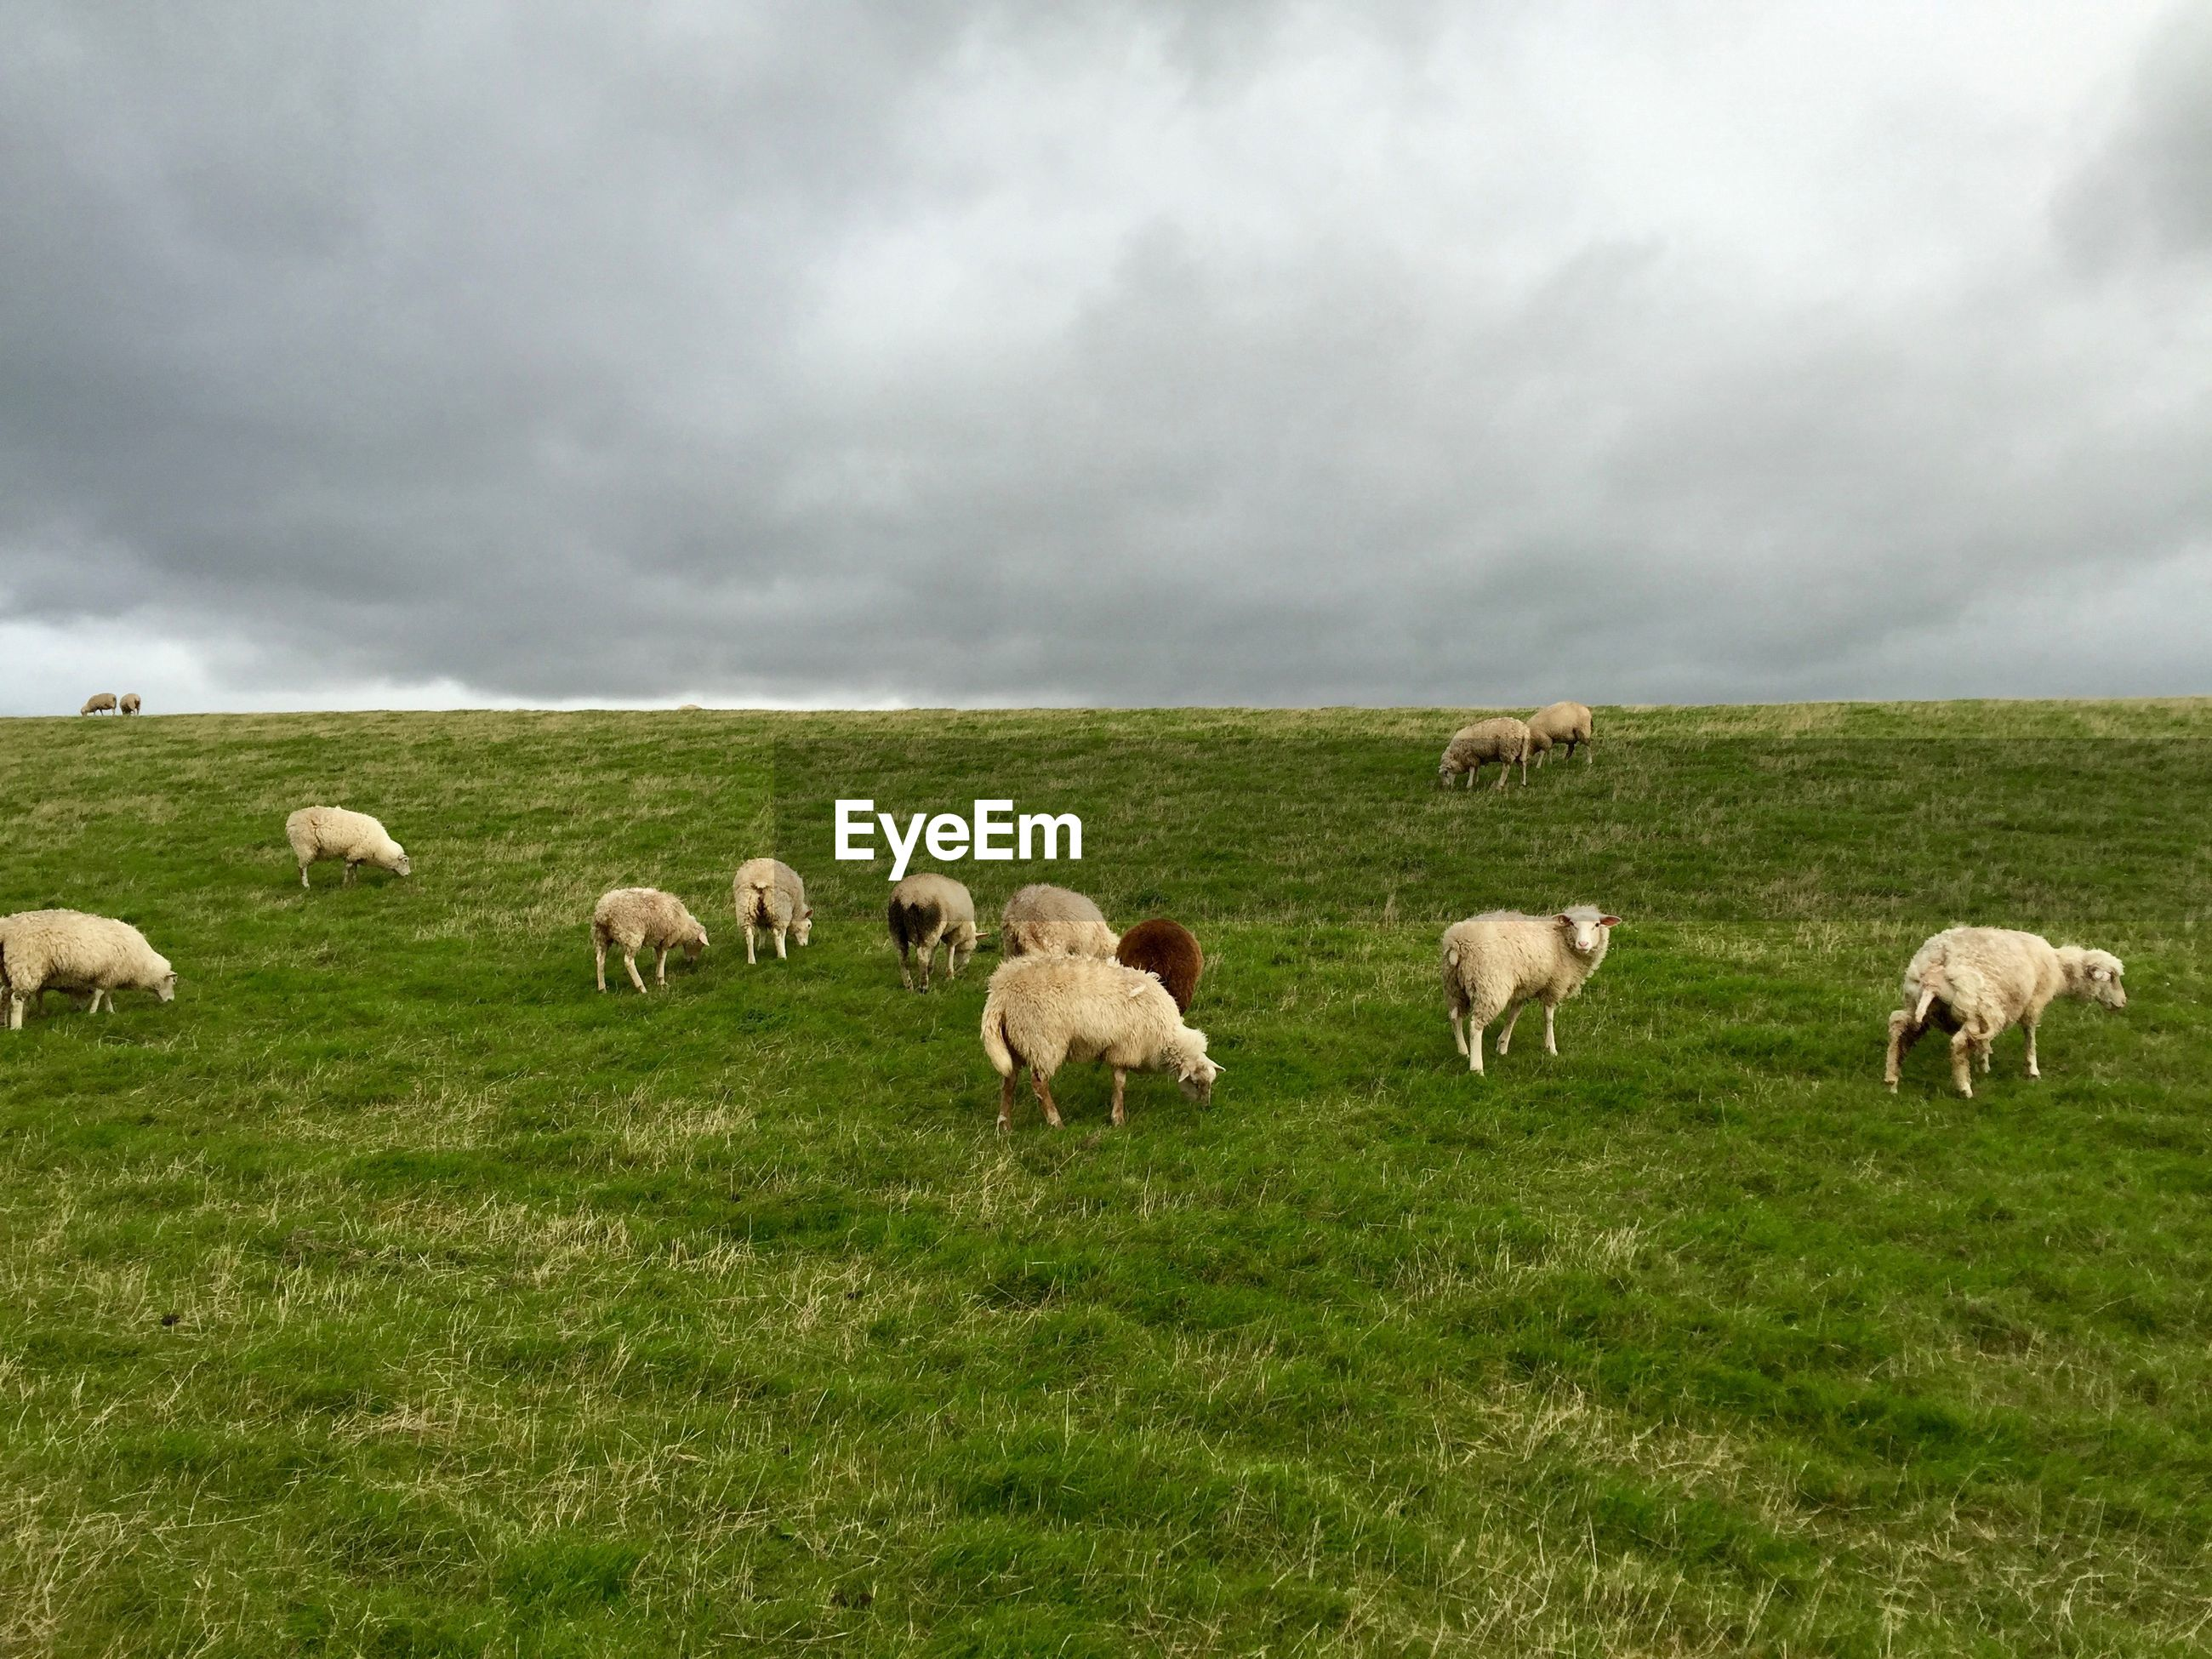 SHEEP GRAZING ON FIELD